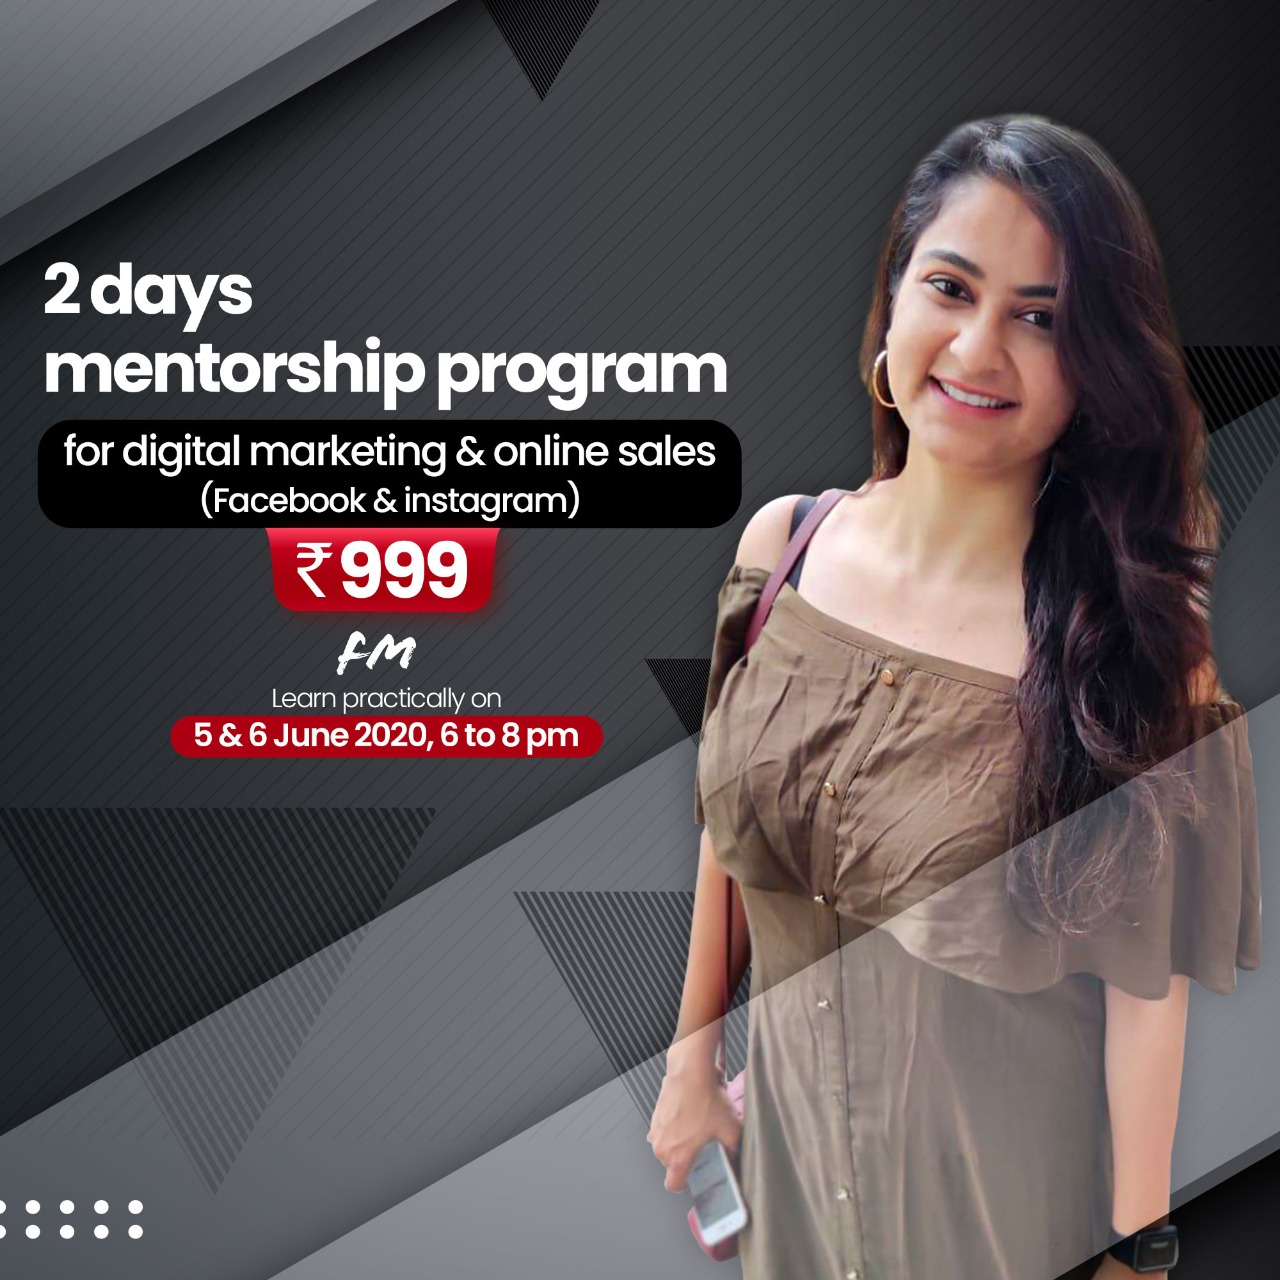 Mentorship Program for Digital Marketing and Online sales (Facebook and Instagram).